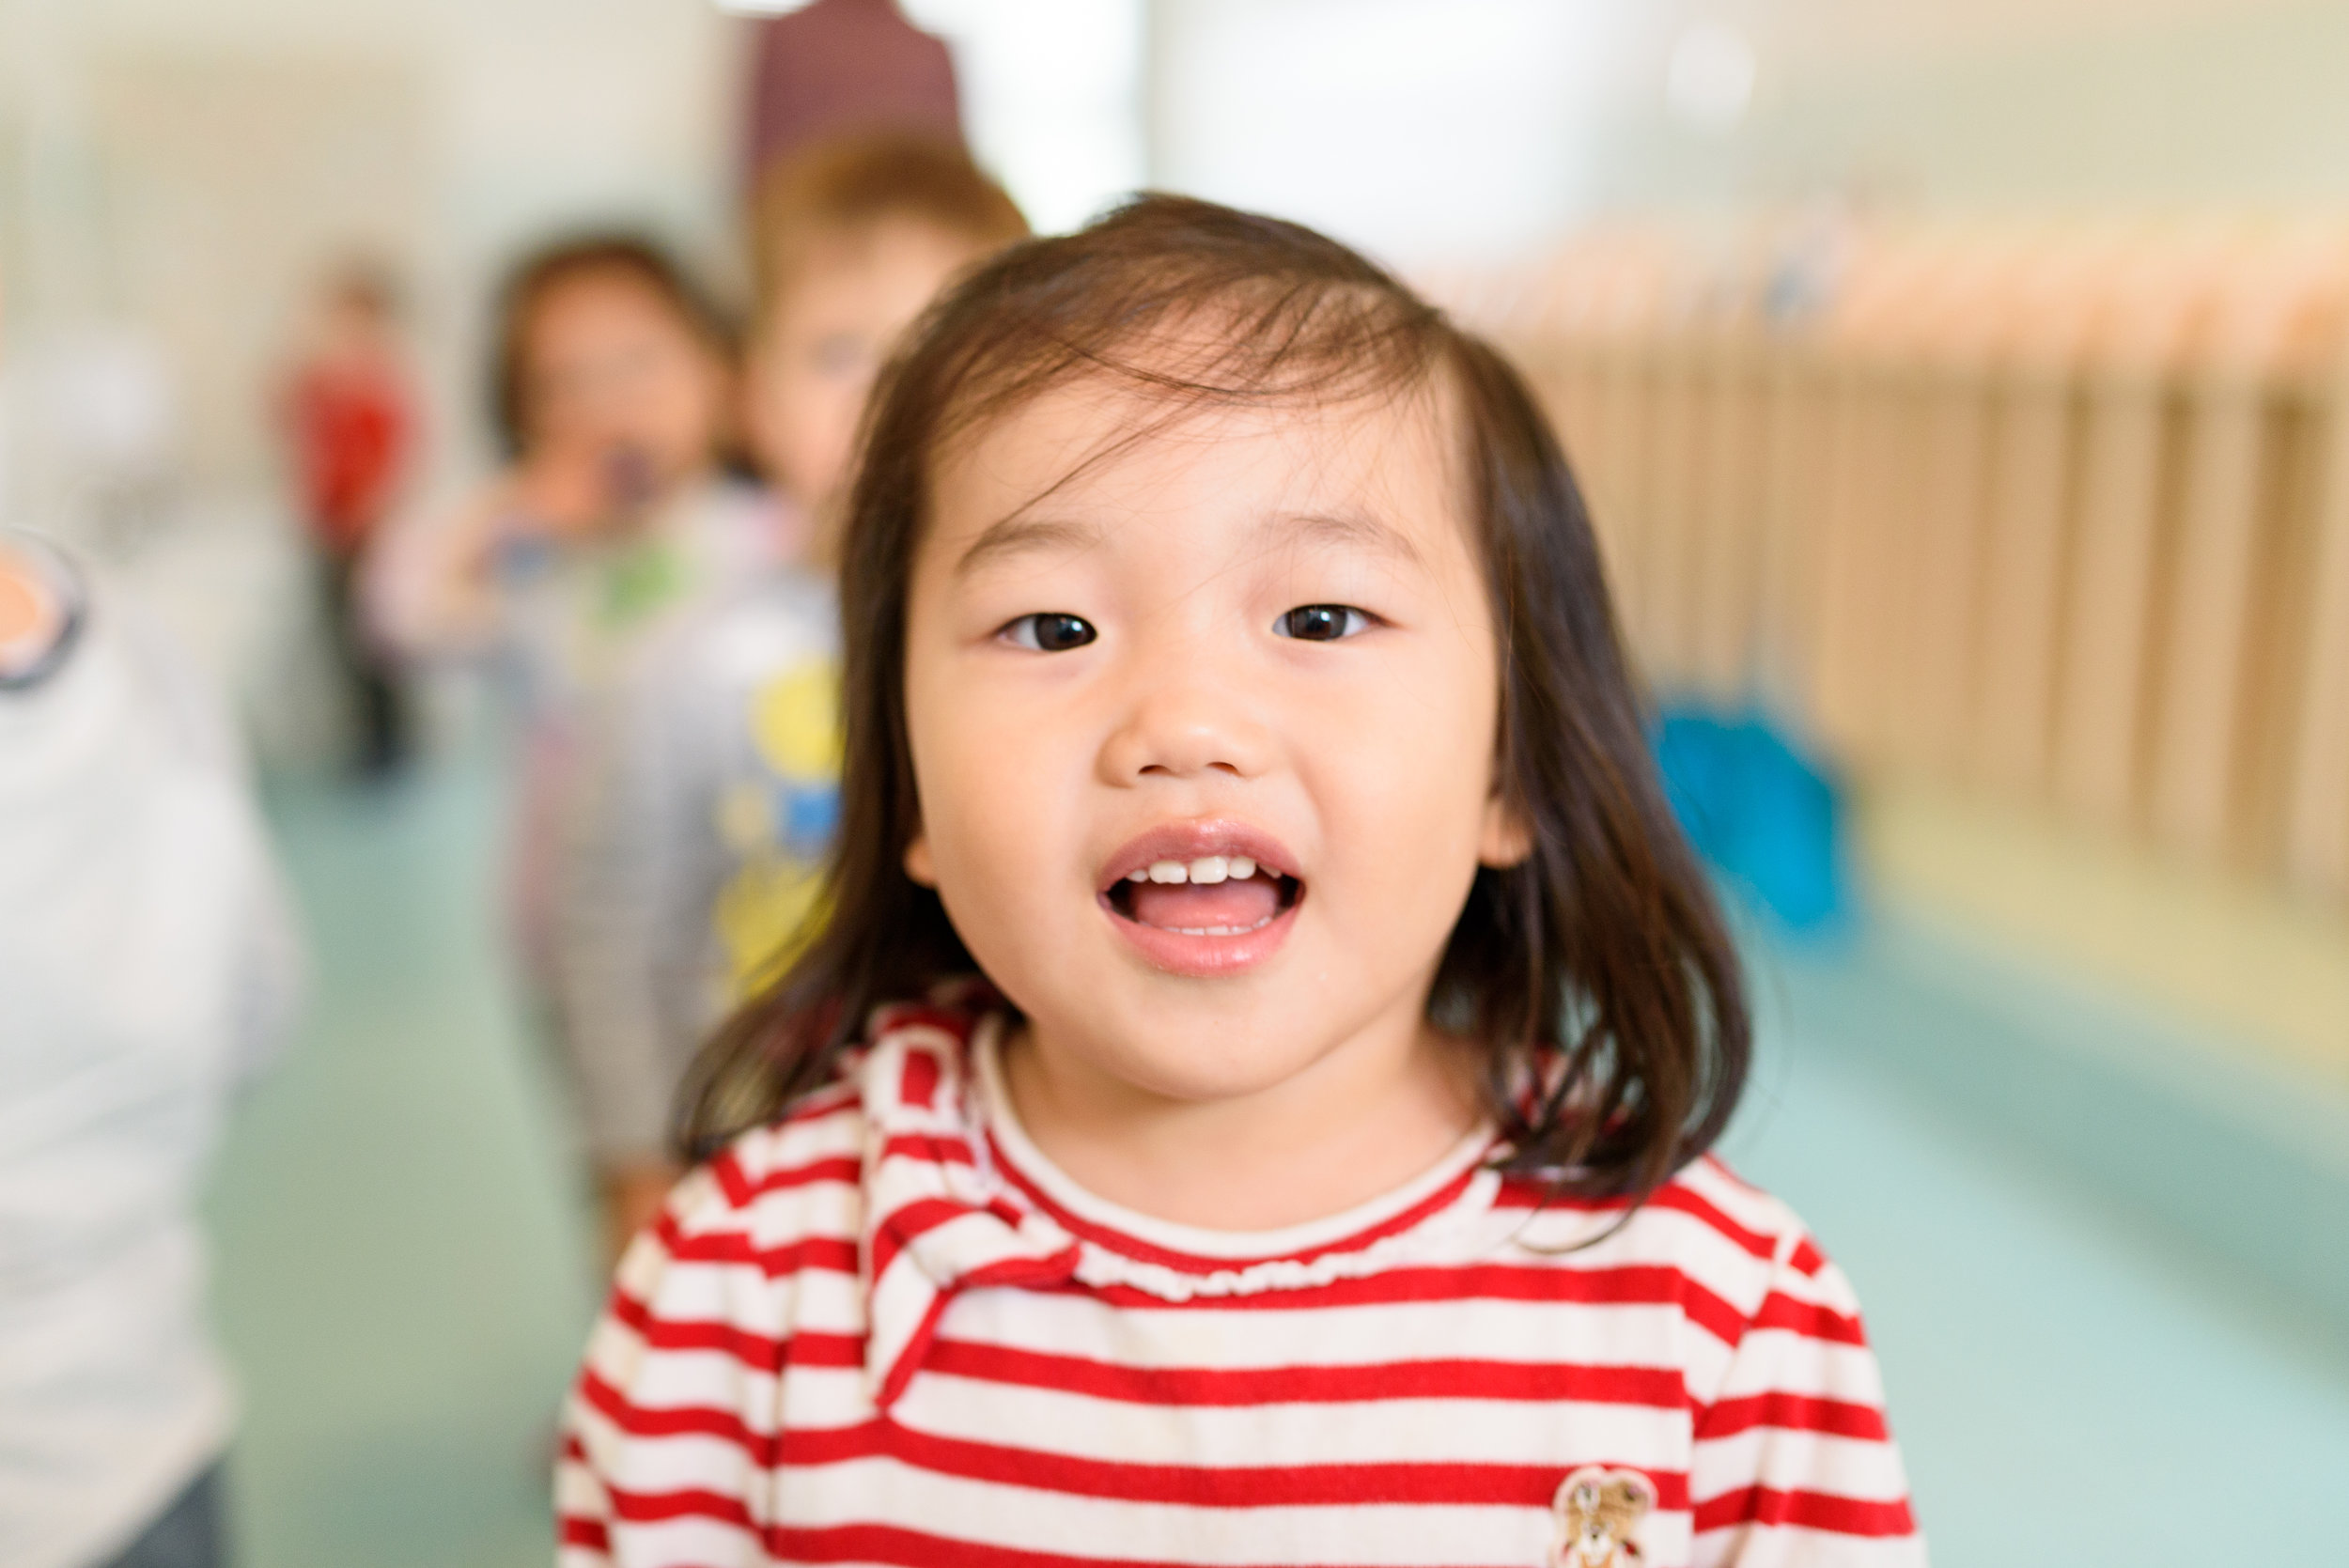 Emphasis of child´s individuality - We are aware that every child is different. They have interests, talents and their own pace of development. We fully respect these characteristics in our children.